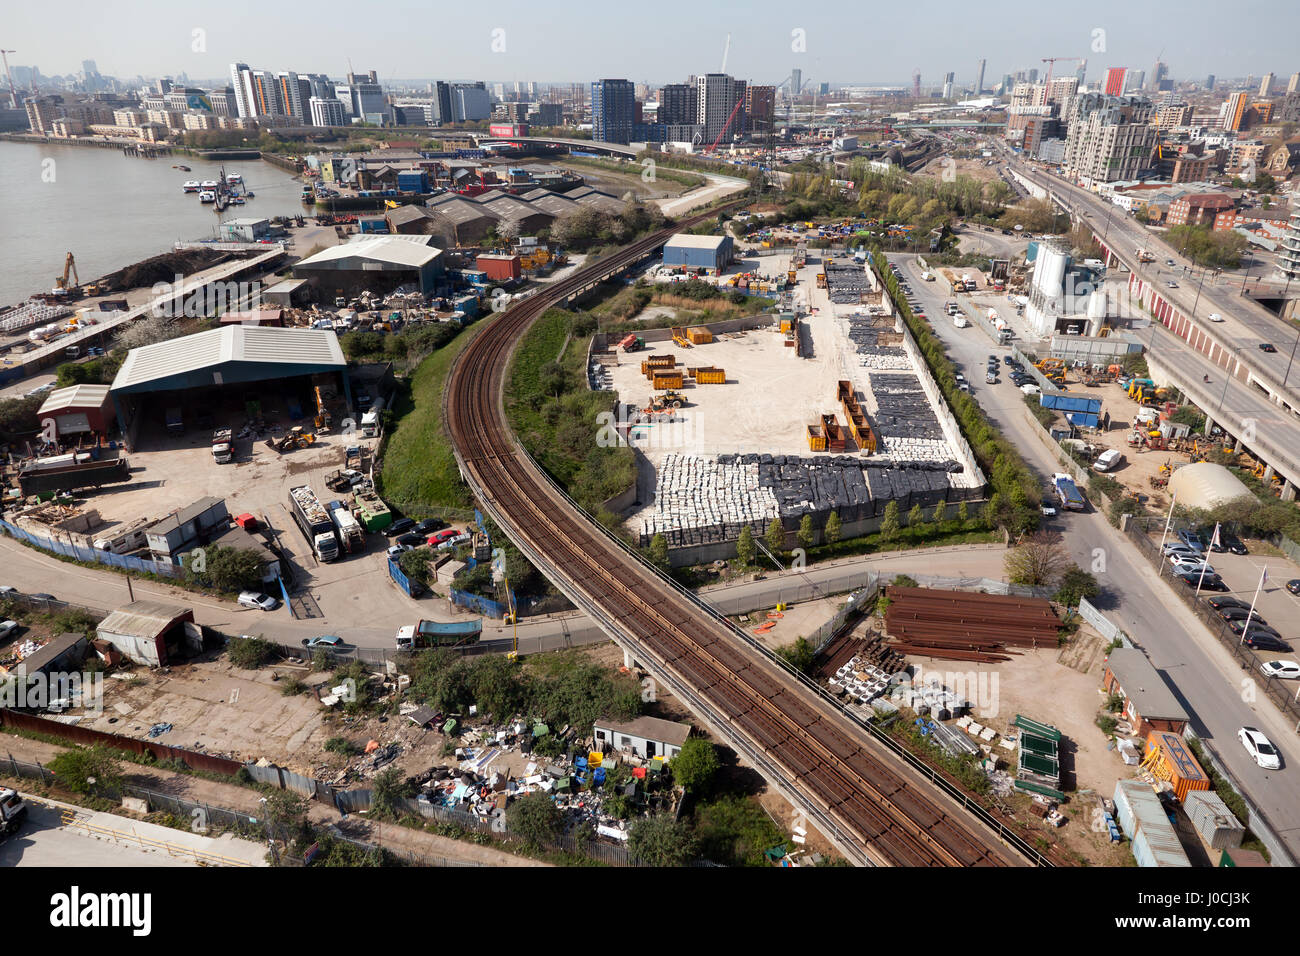 Aerial View looking towards Canning Town and the Estuary of the River Lee - Stock Image